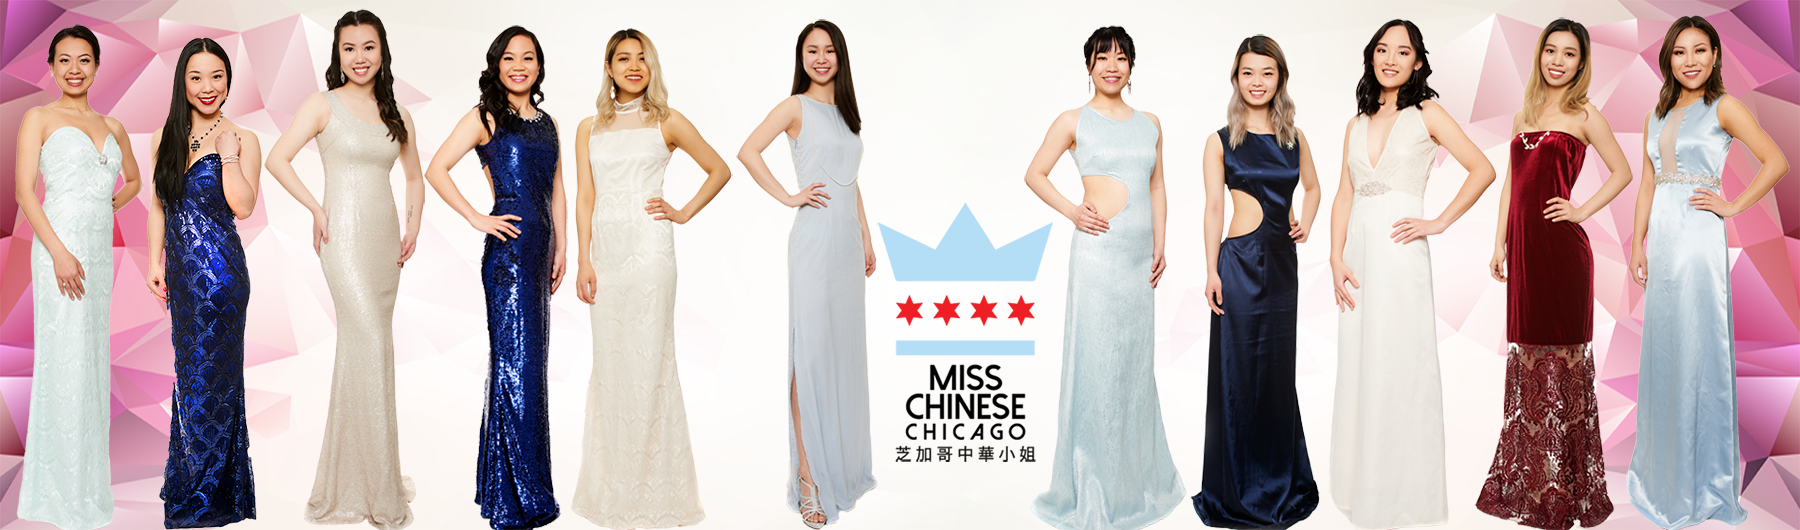 Miss Chinese Chicago 2019 Pageant